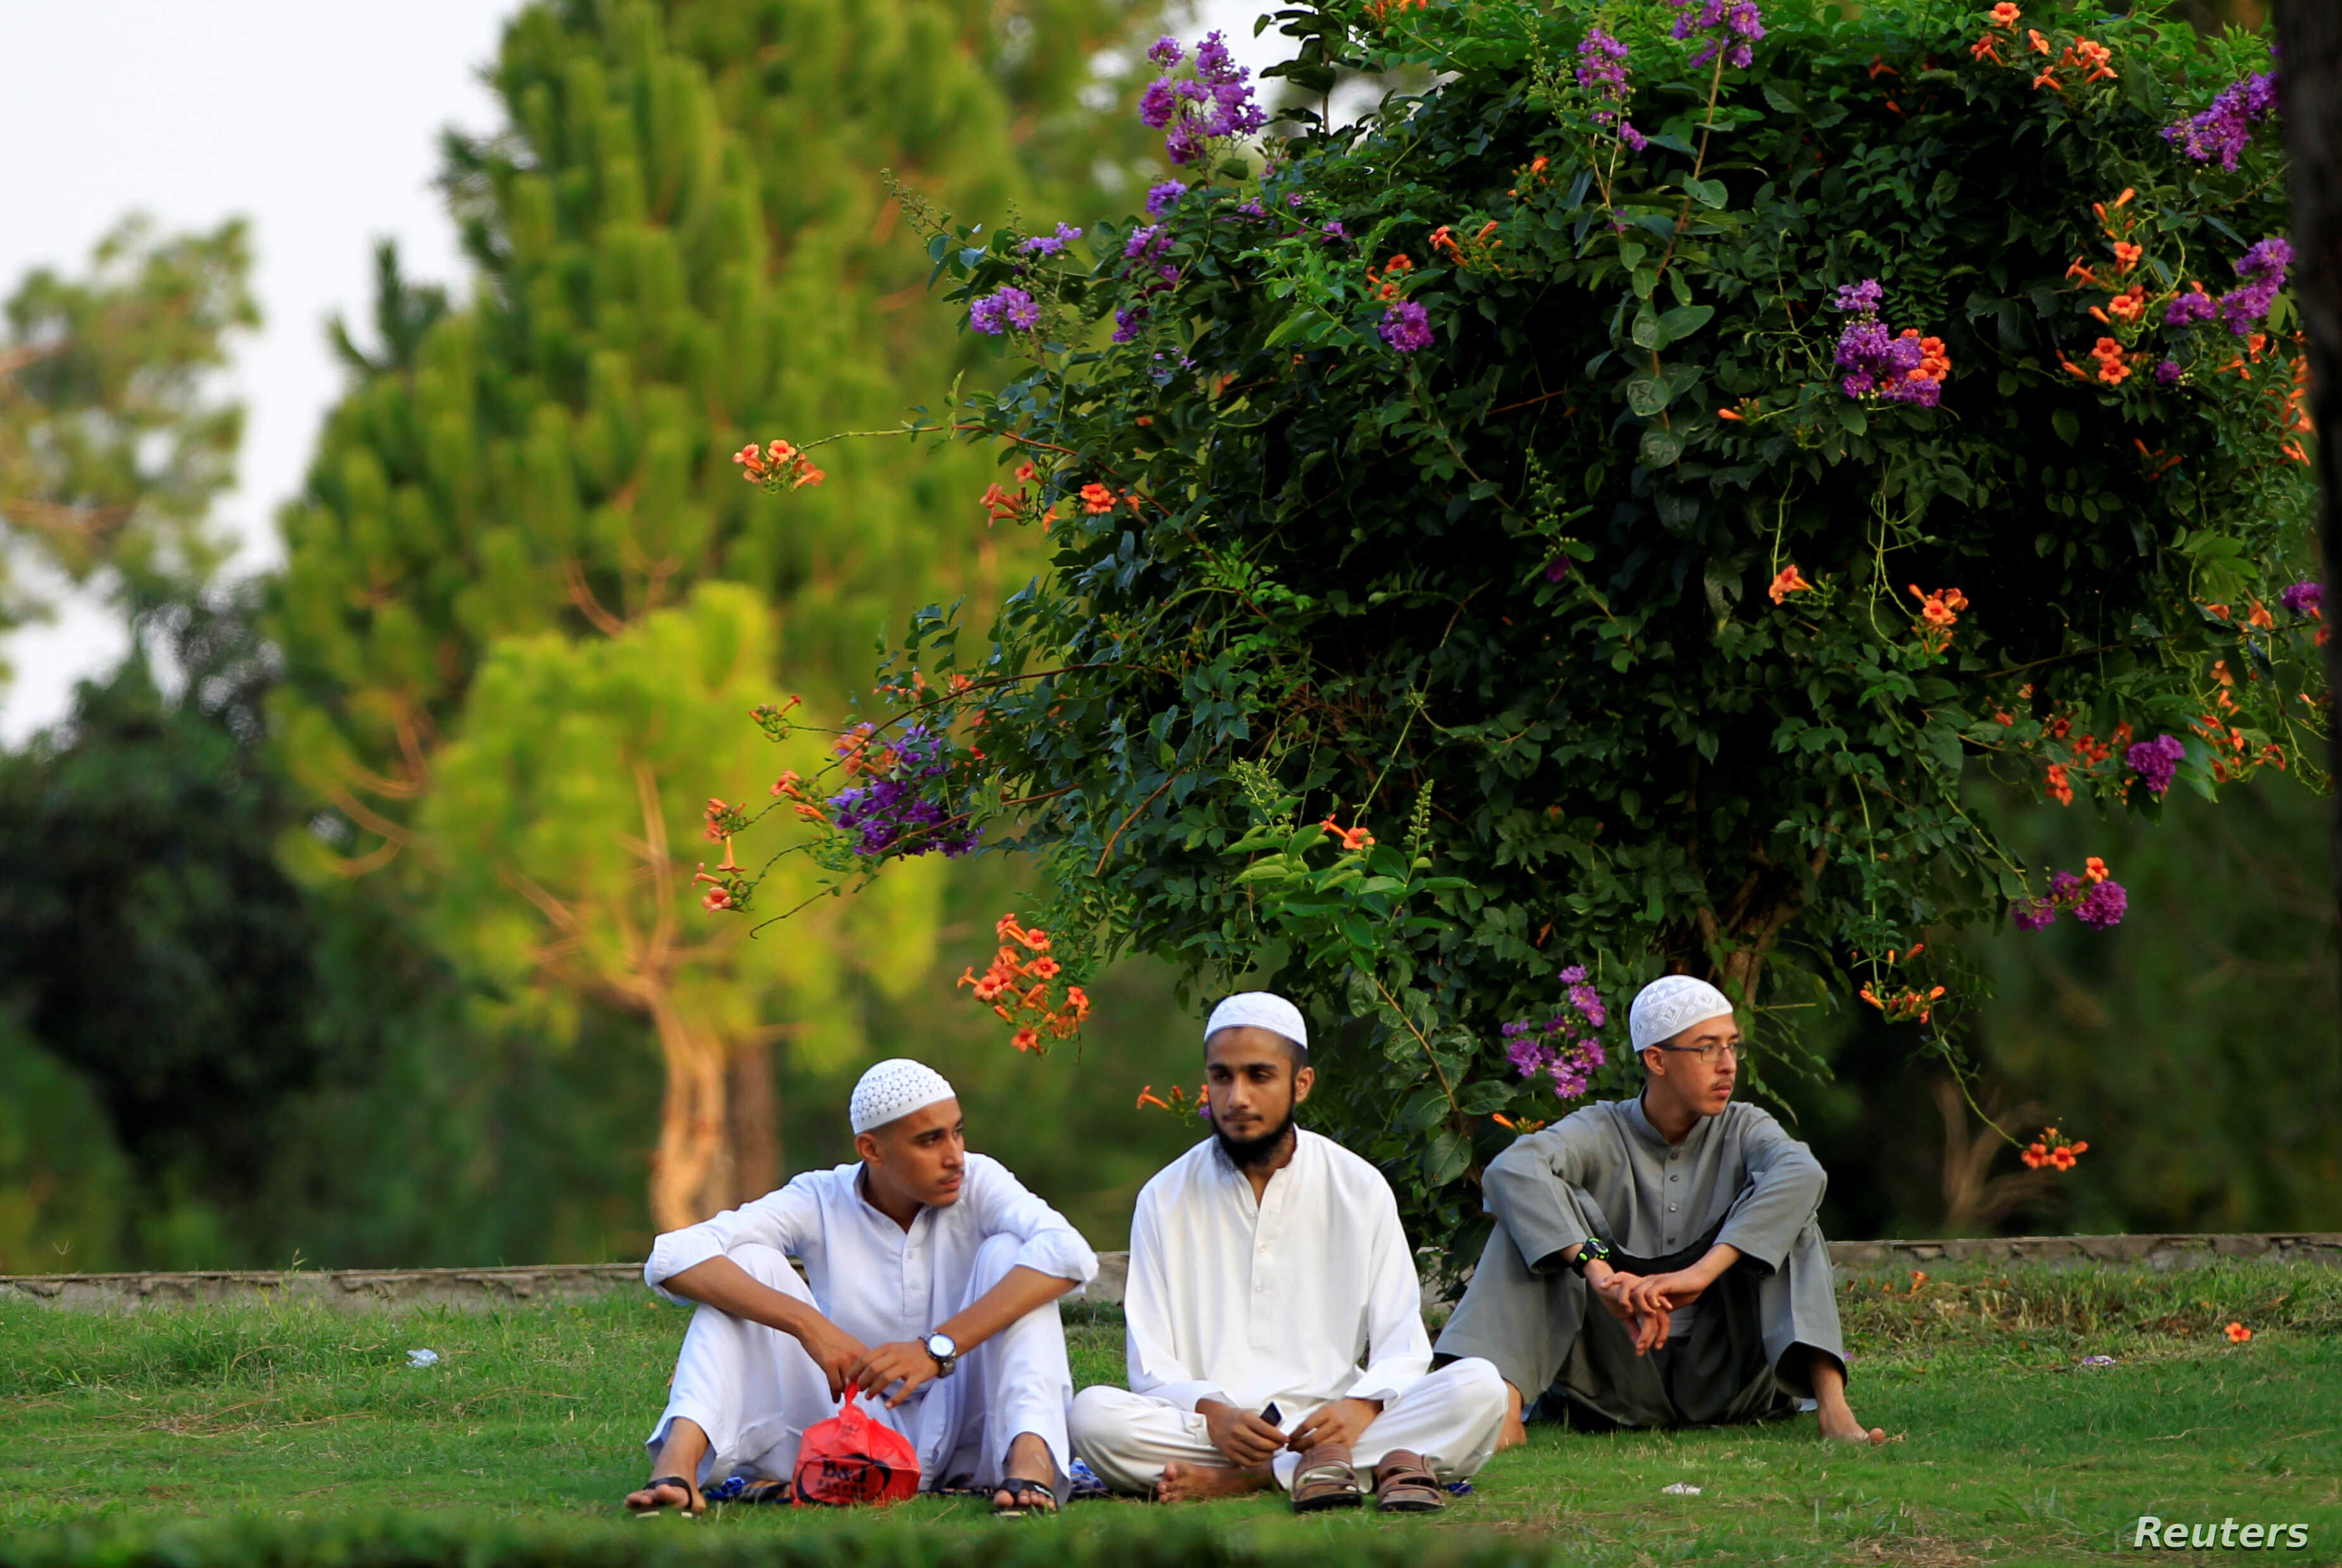 Students from a local madrassa rest on the lawn near a traffic light in Islamabad, Pakistan July 14, 2017.